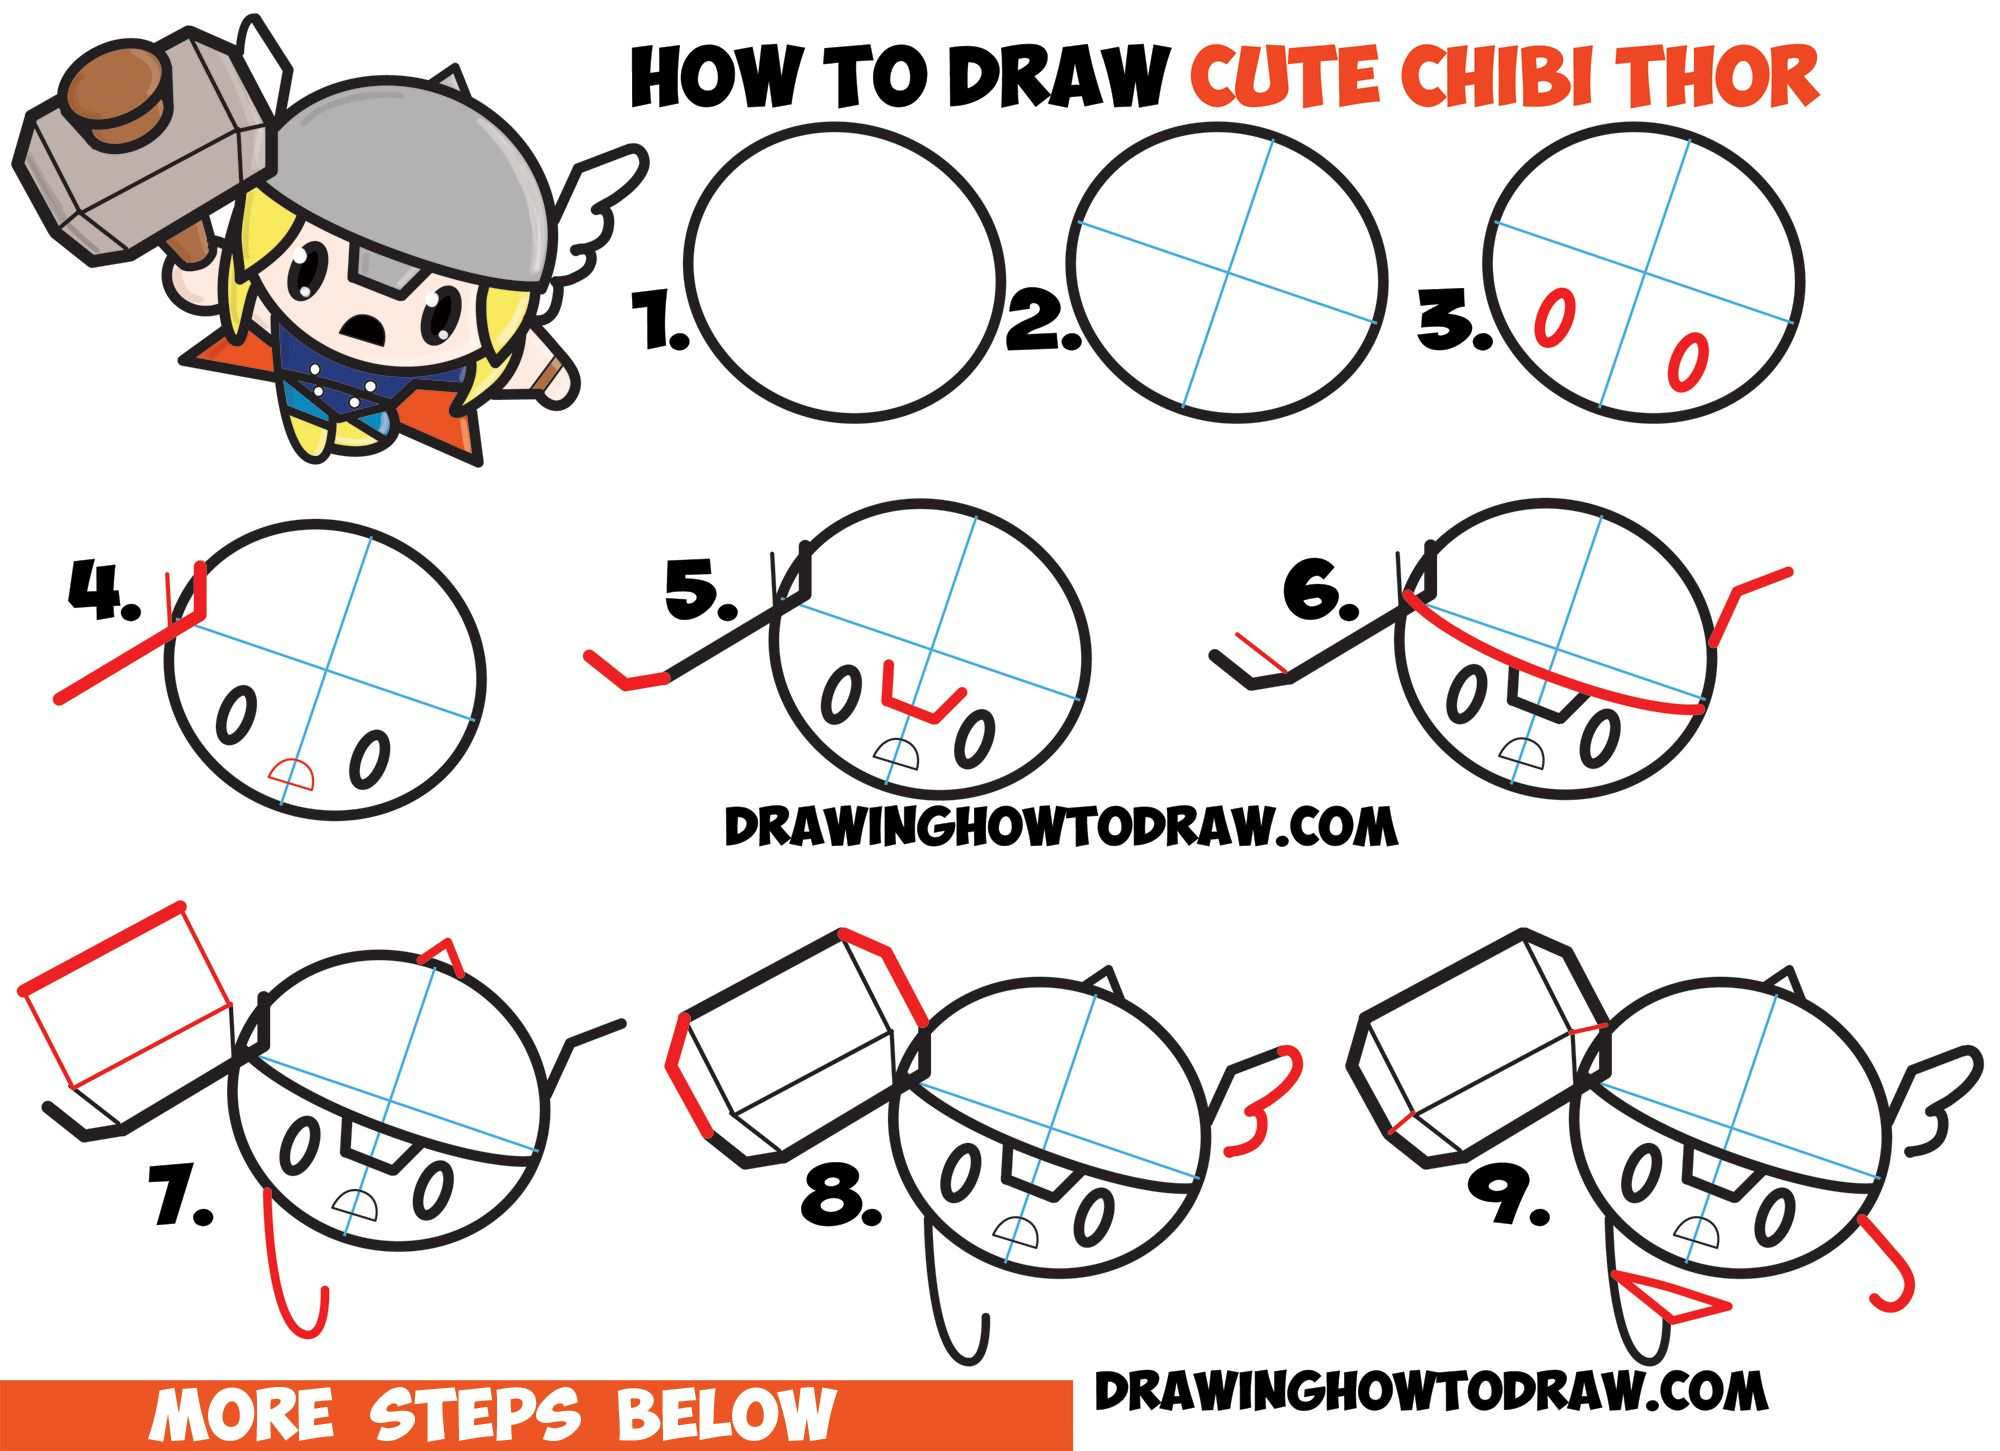 How To Draw Cute Chibi Kawaii Thor From Marvel Comics In Easy Steps Drawing Tutorial With Images Marvel Drawings Cute Drawings Drawing Superheroes